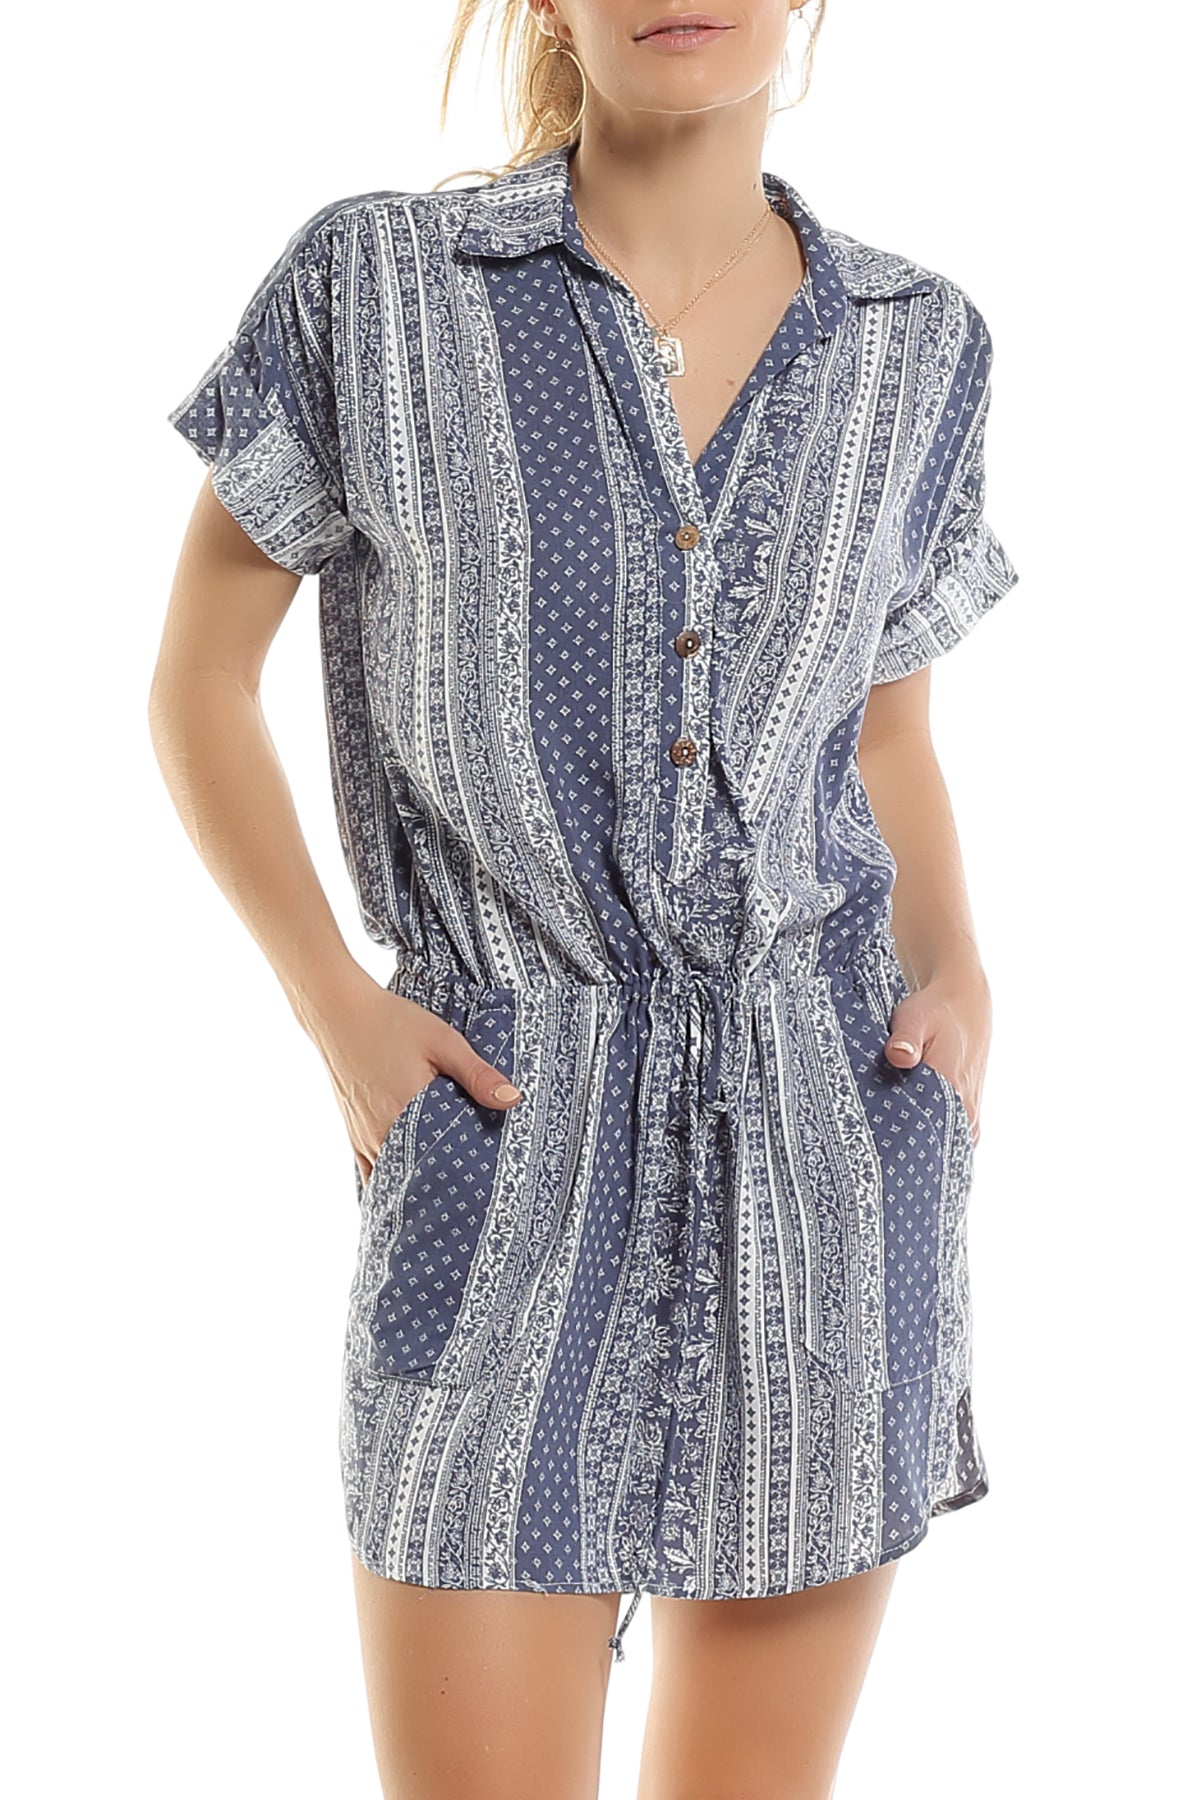 SAVANNAH SHIRT DRESS - NEW NEW